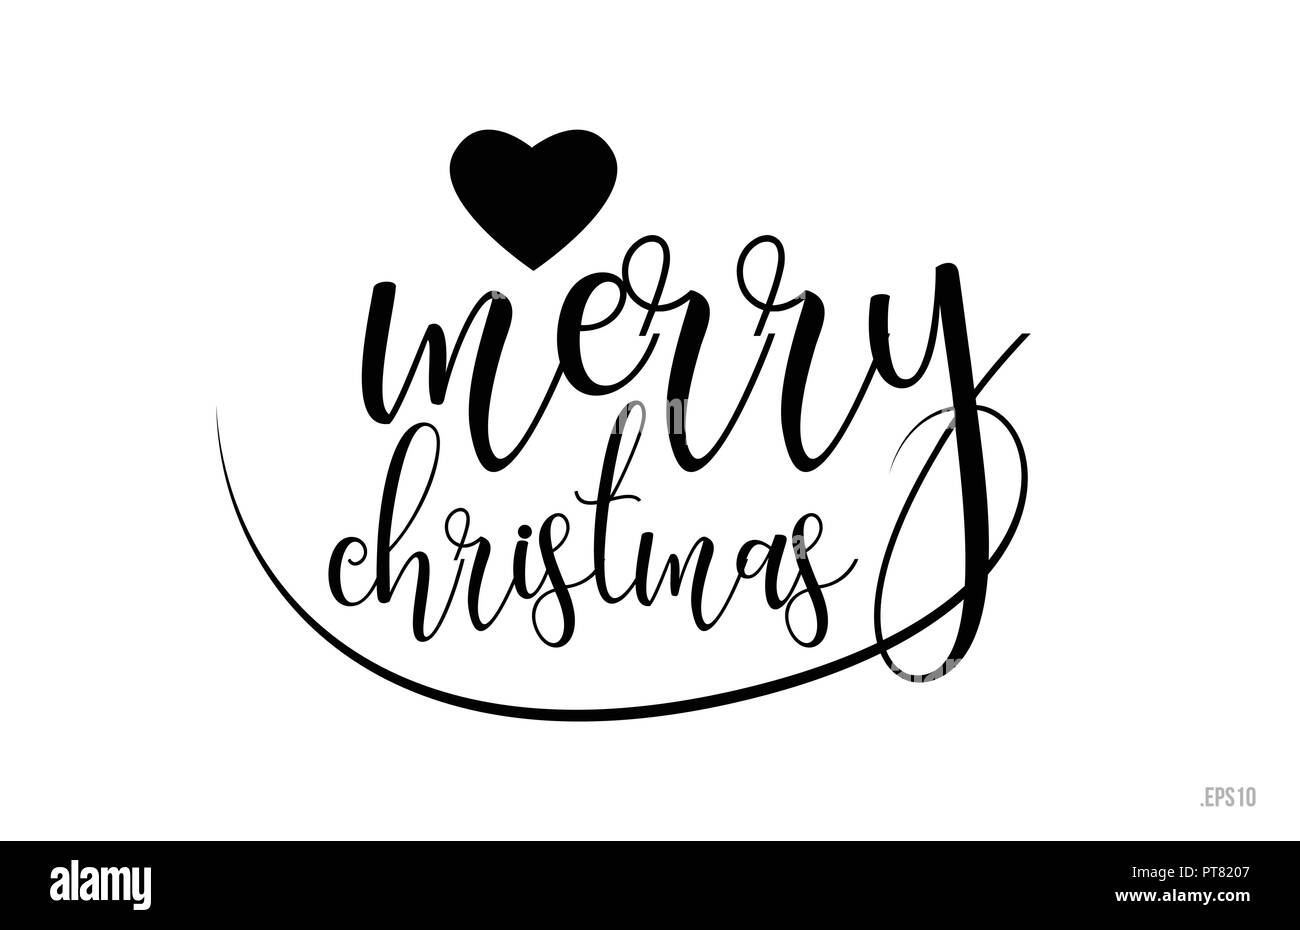 Merry Christmas Word Text With Black And White Love Heart